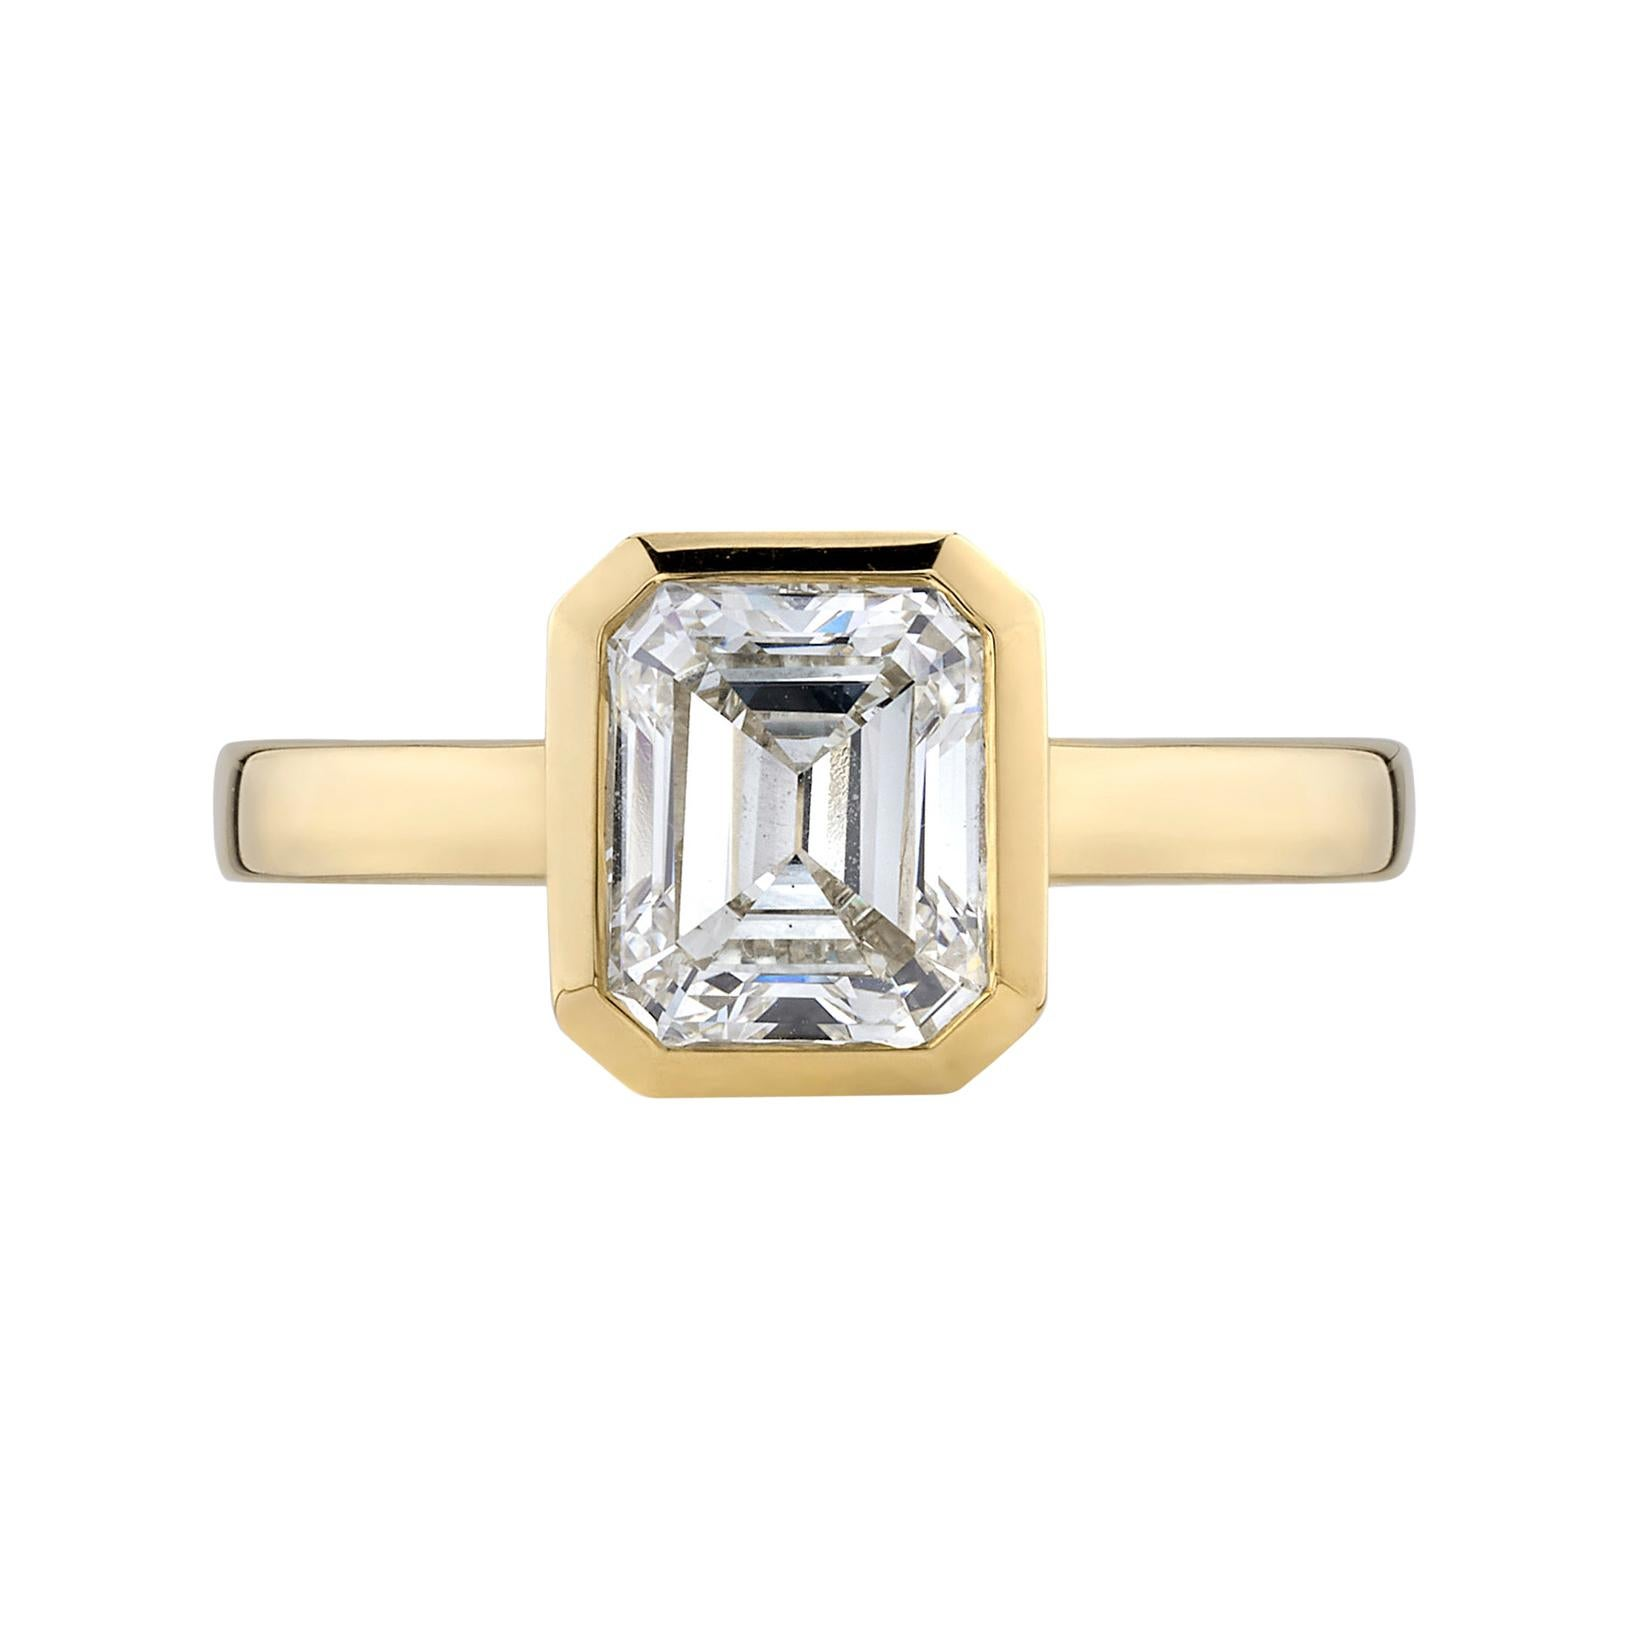 1.61 Carat Emerald Cut Diamond Set in a Handcrafted Yellow Gold Engagement Ring